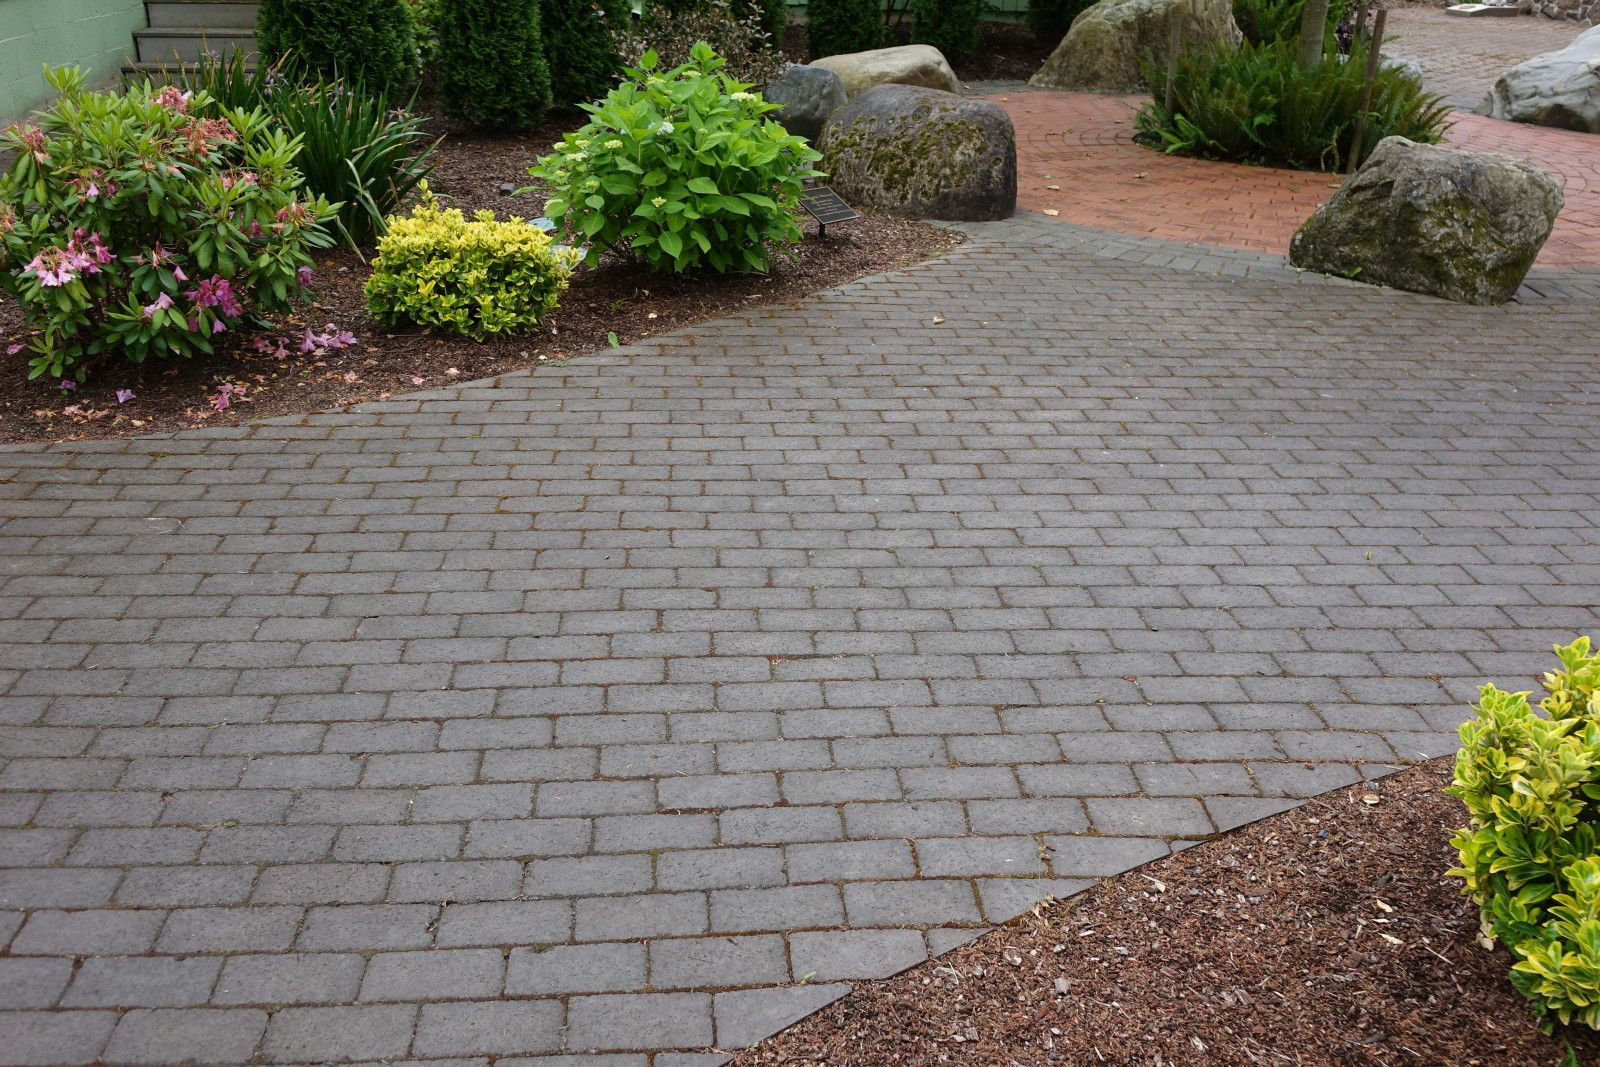 Clay Brick Pavers 100% Natural Clay Brick Paversthis Walkway Path Built With Roman